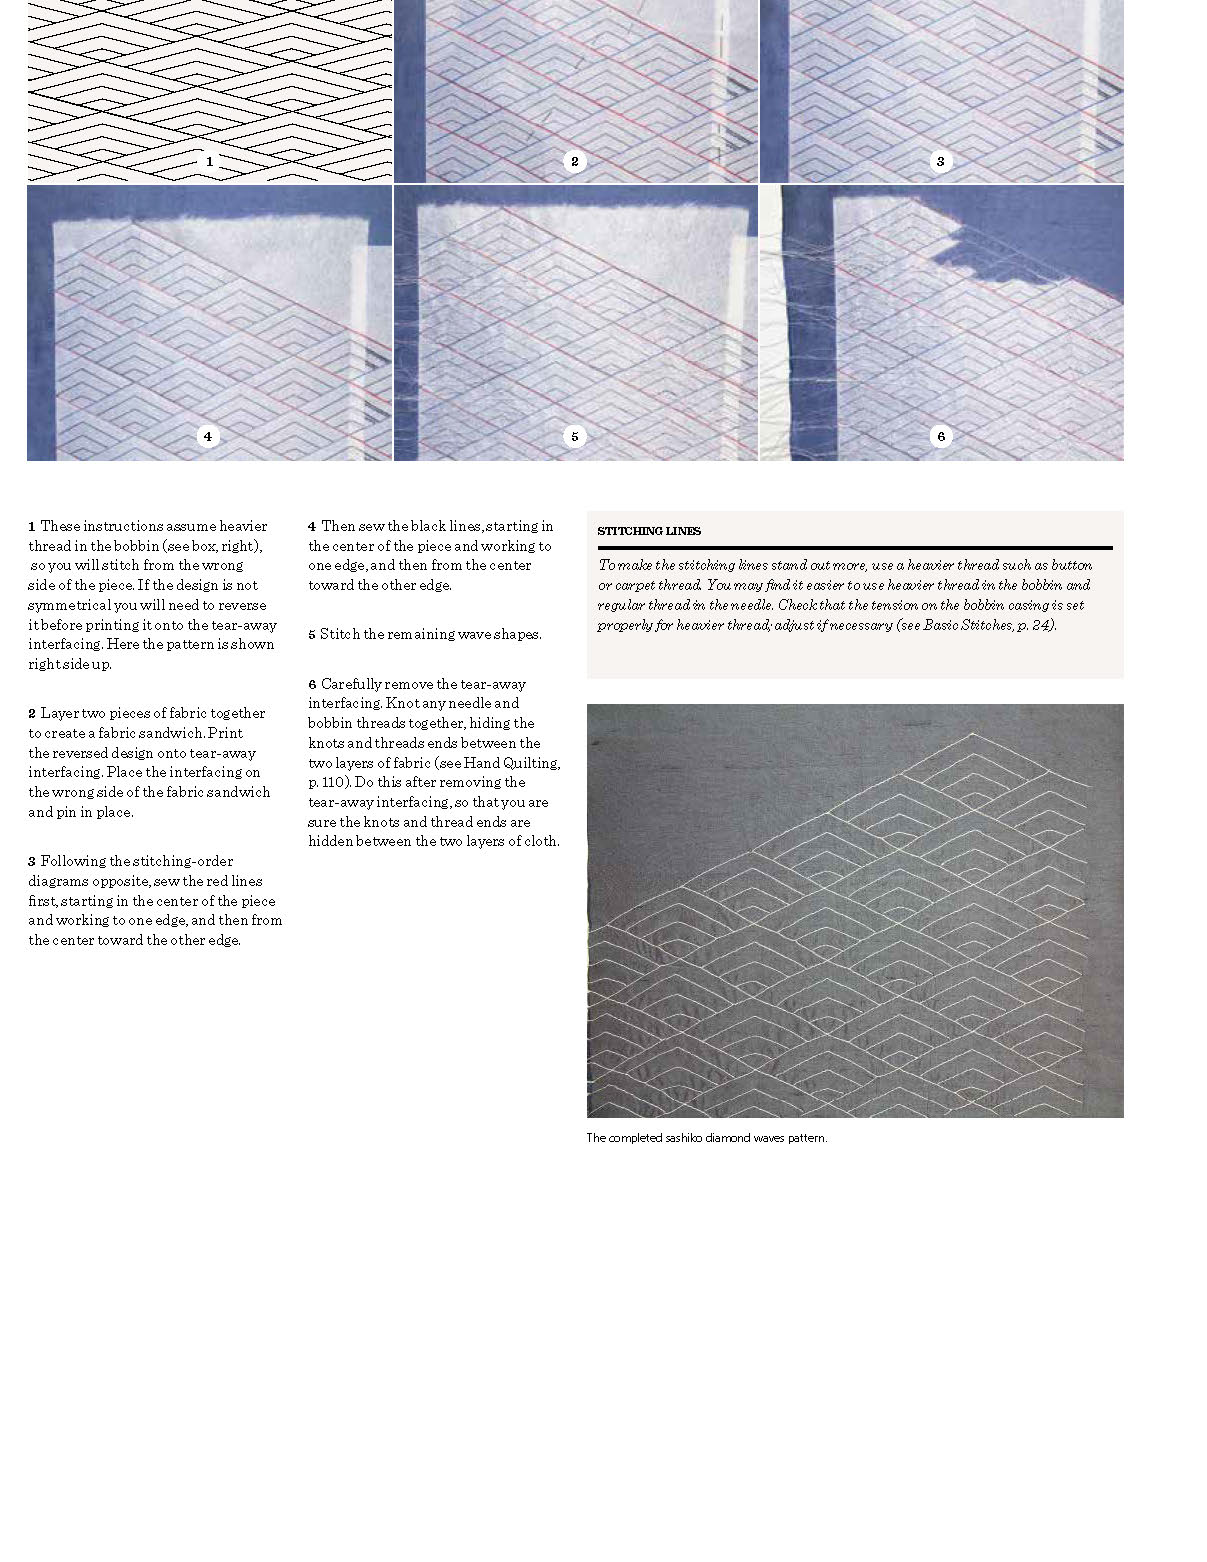 Second page of instructions from Creating Couture Embellishment describing how to do Sashiko.